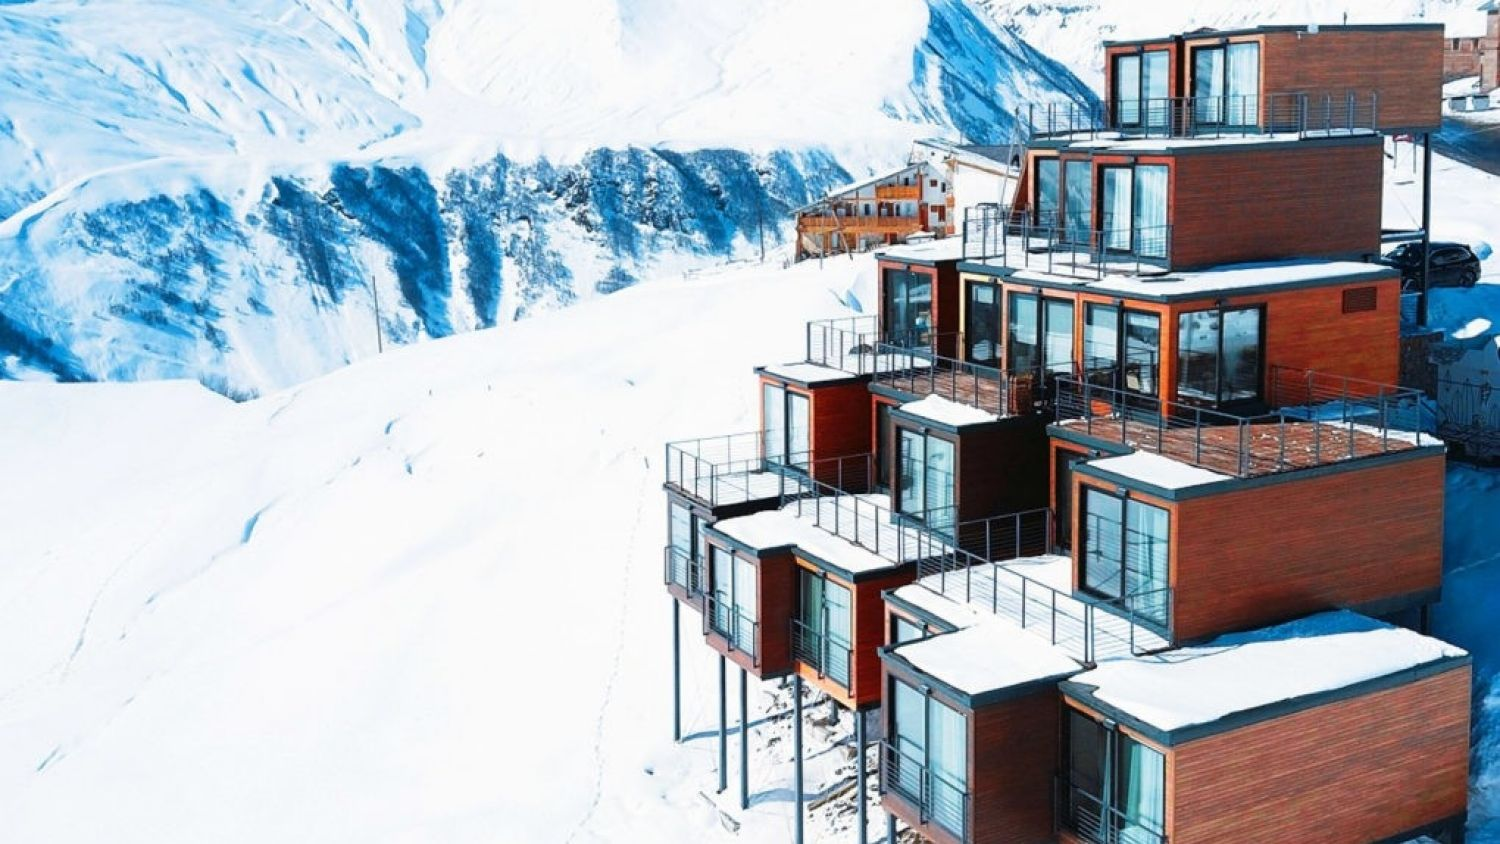 Quadrum Ski and Yoga Resort is located 2200 metres above sea level in the Caucasus mountain range in Georgia.